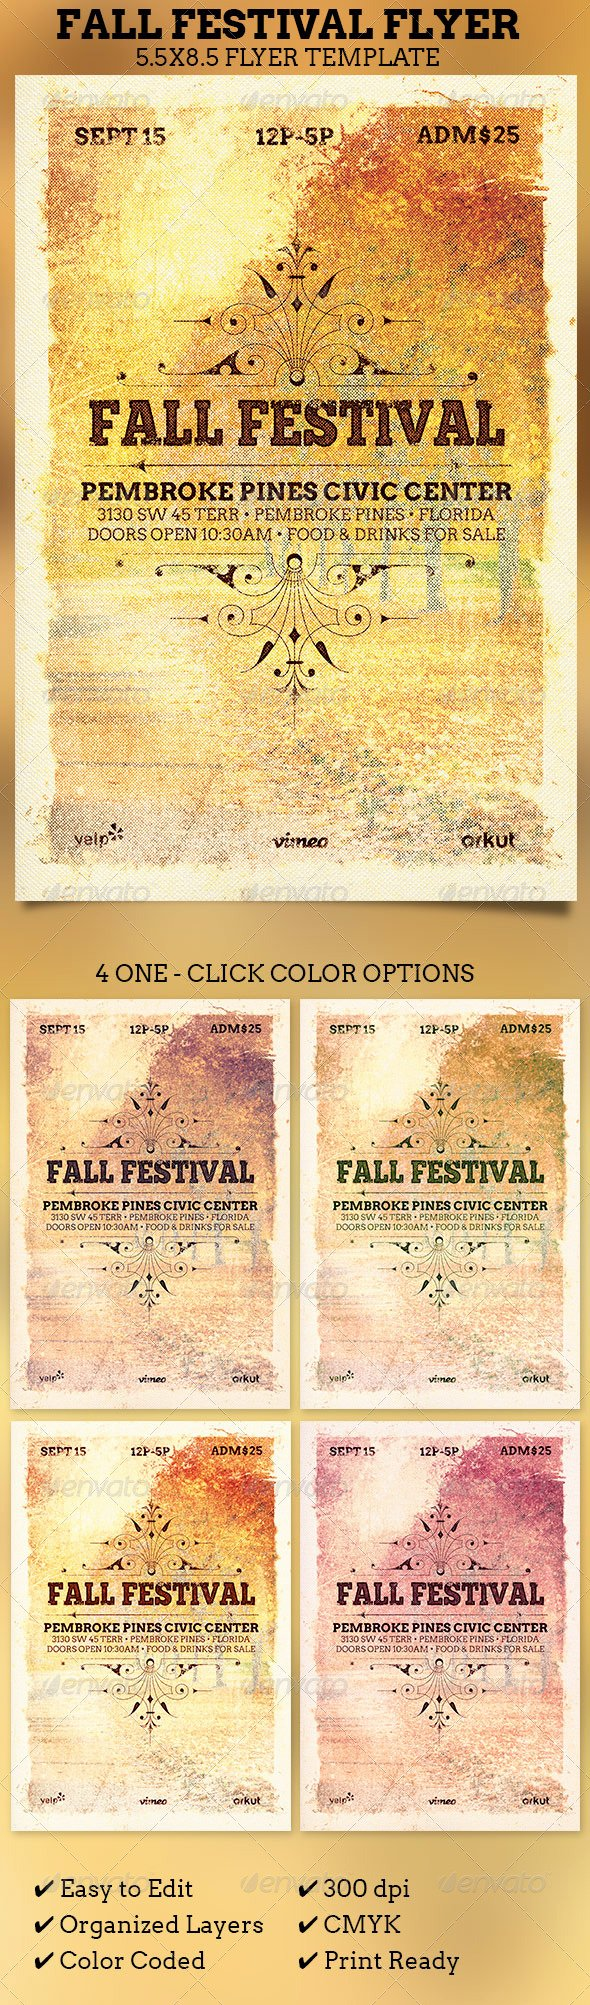 Fall Festival Flyer Template by 4cgraphic